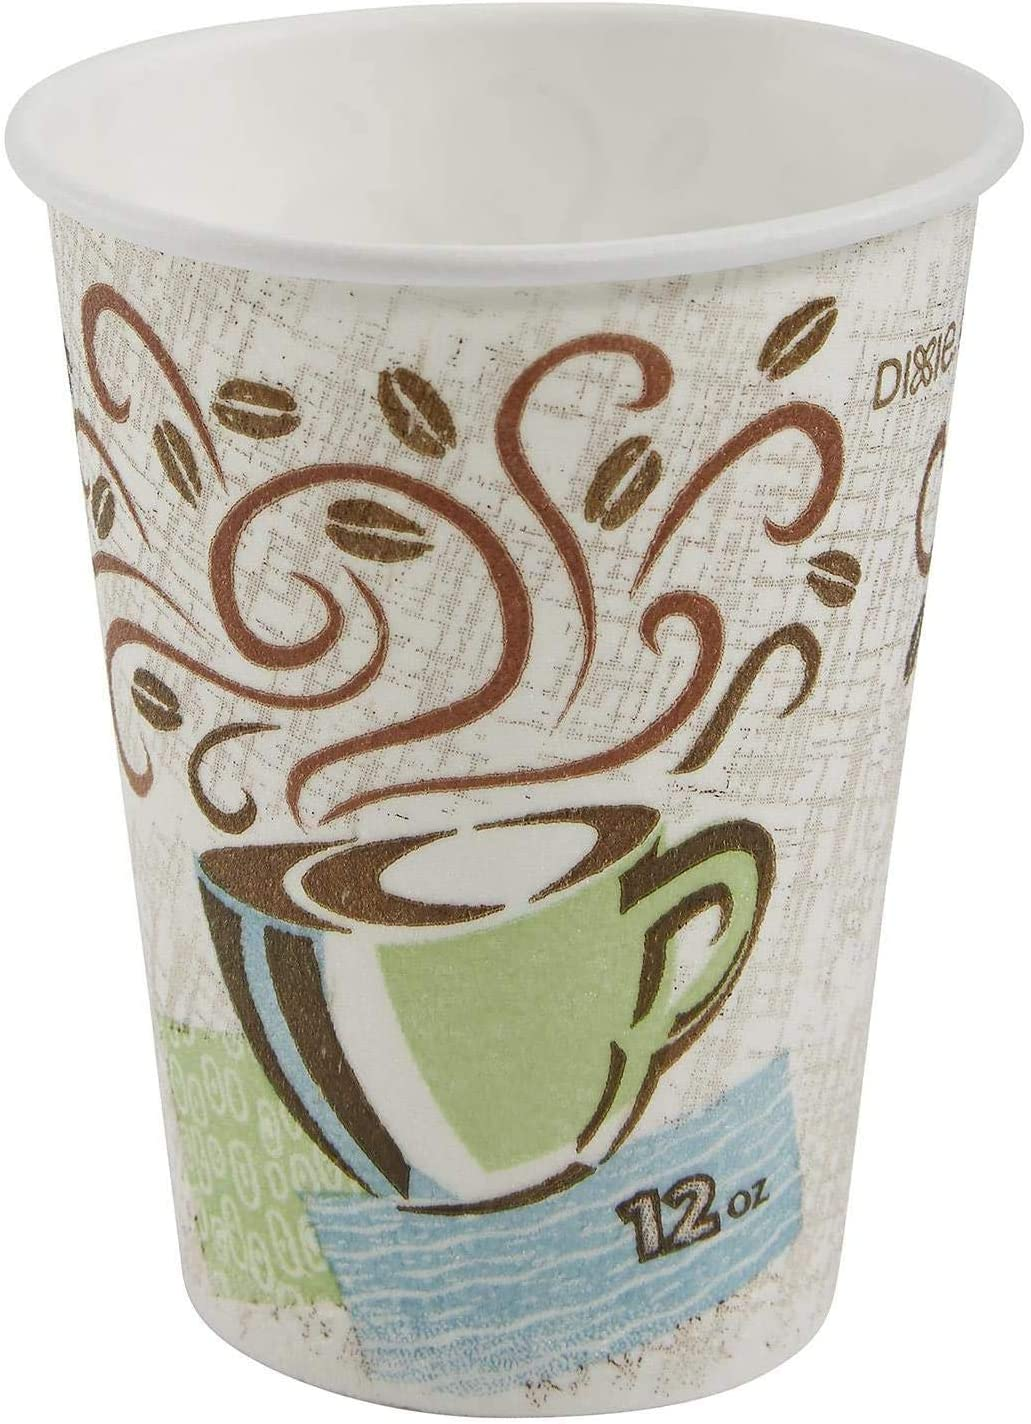 Spring new work Dixie PerfecTouch Insulated Portland Mall Paper Cups oz 12 500 CT